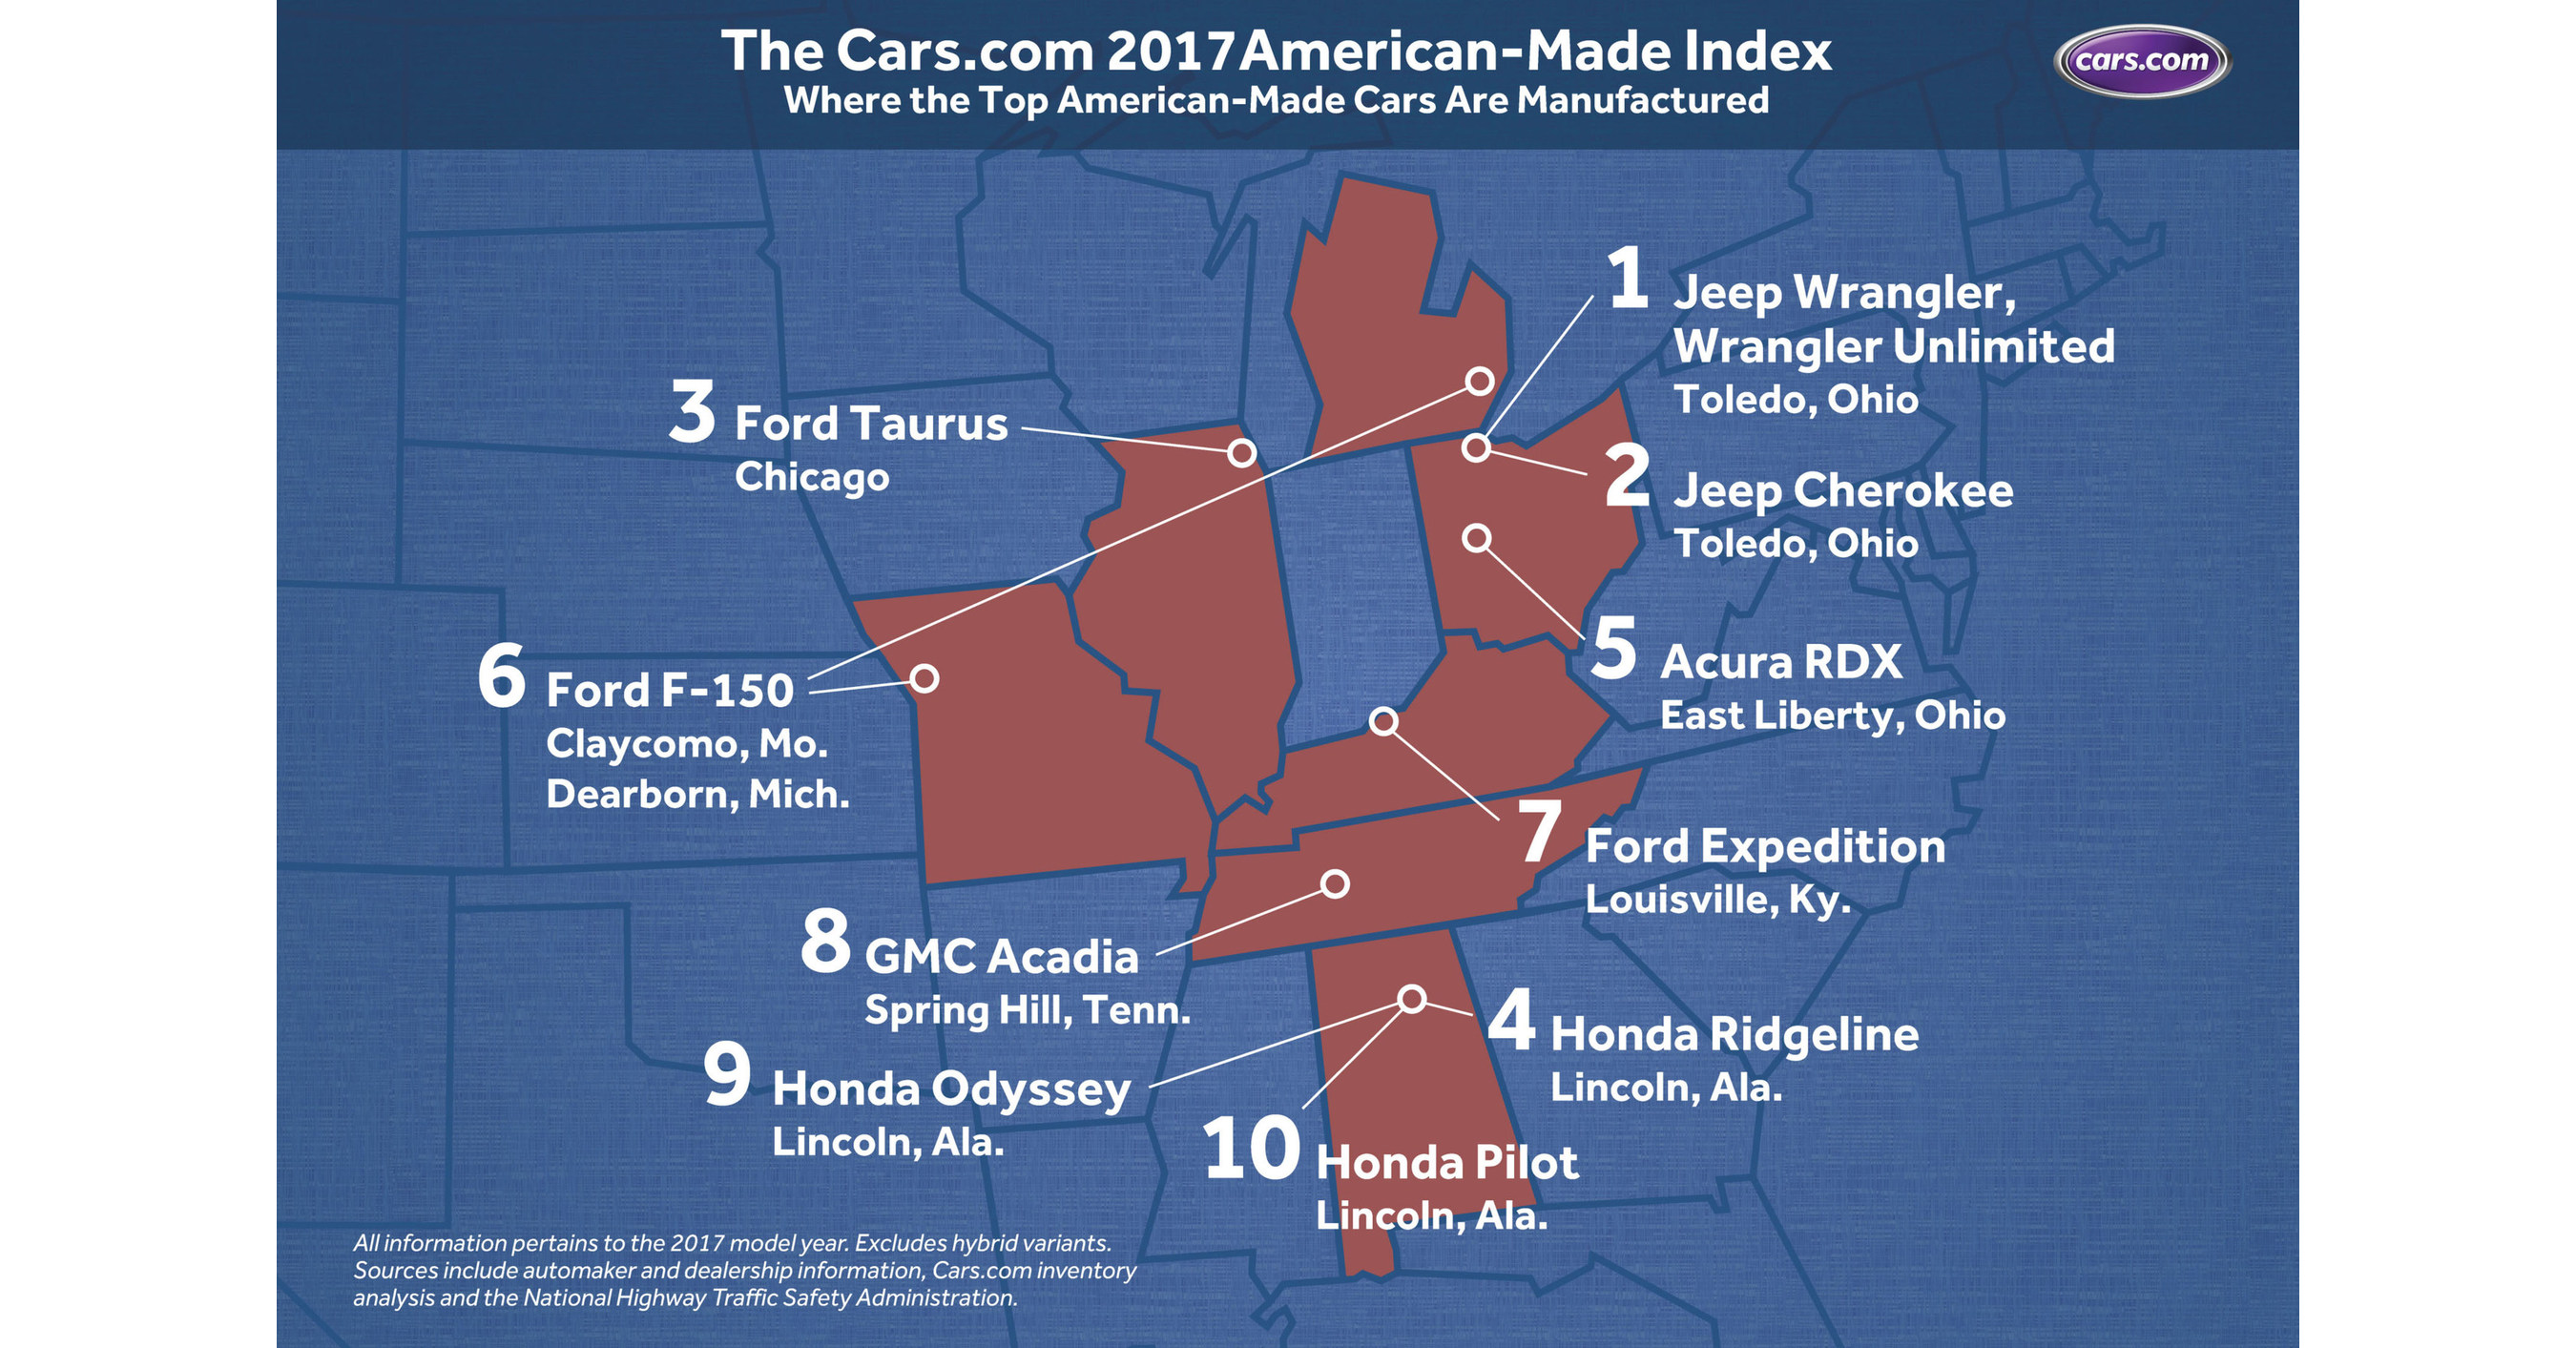 Cars.com Releases 2017 American-Made Index